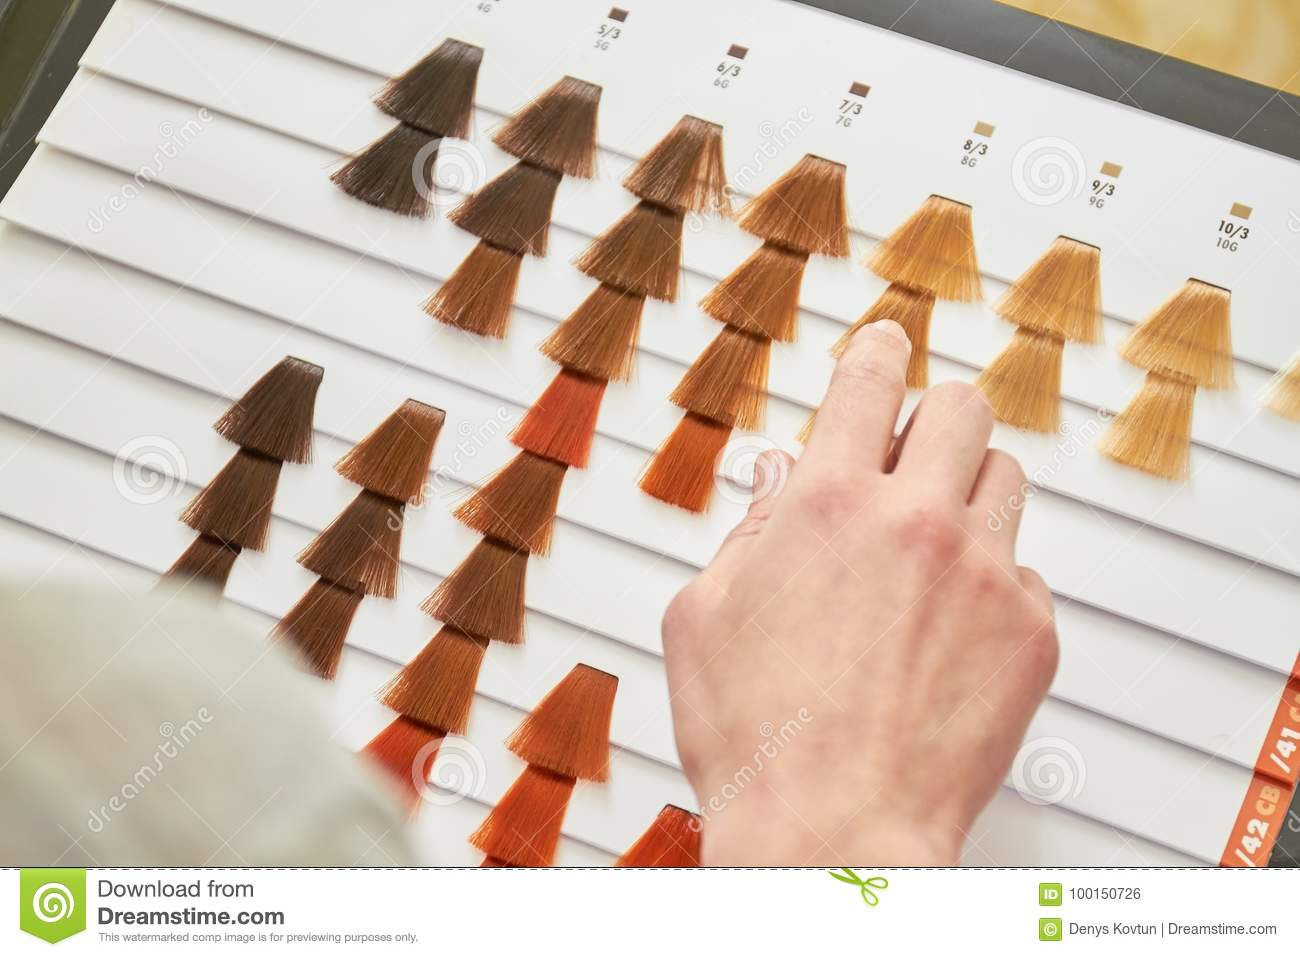 Amazon. Com: tofafa hair extensions color rings hair color chart.